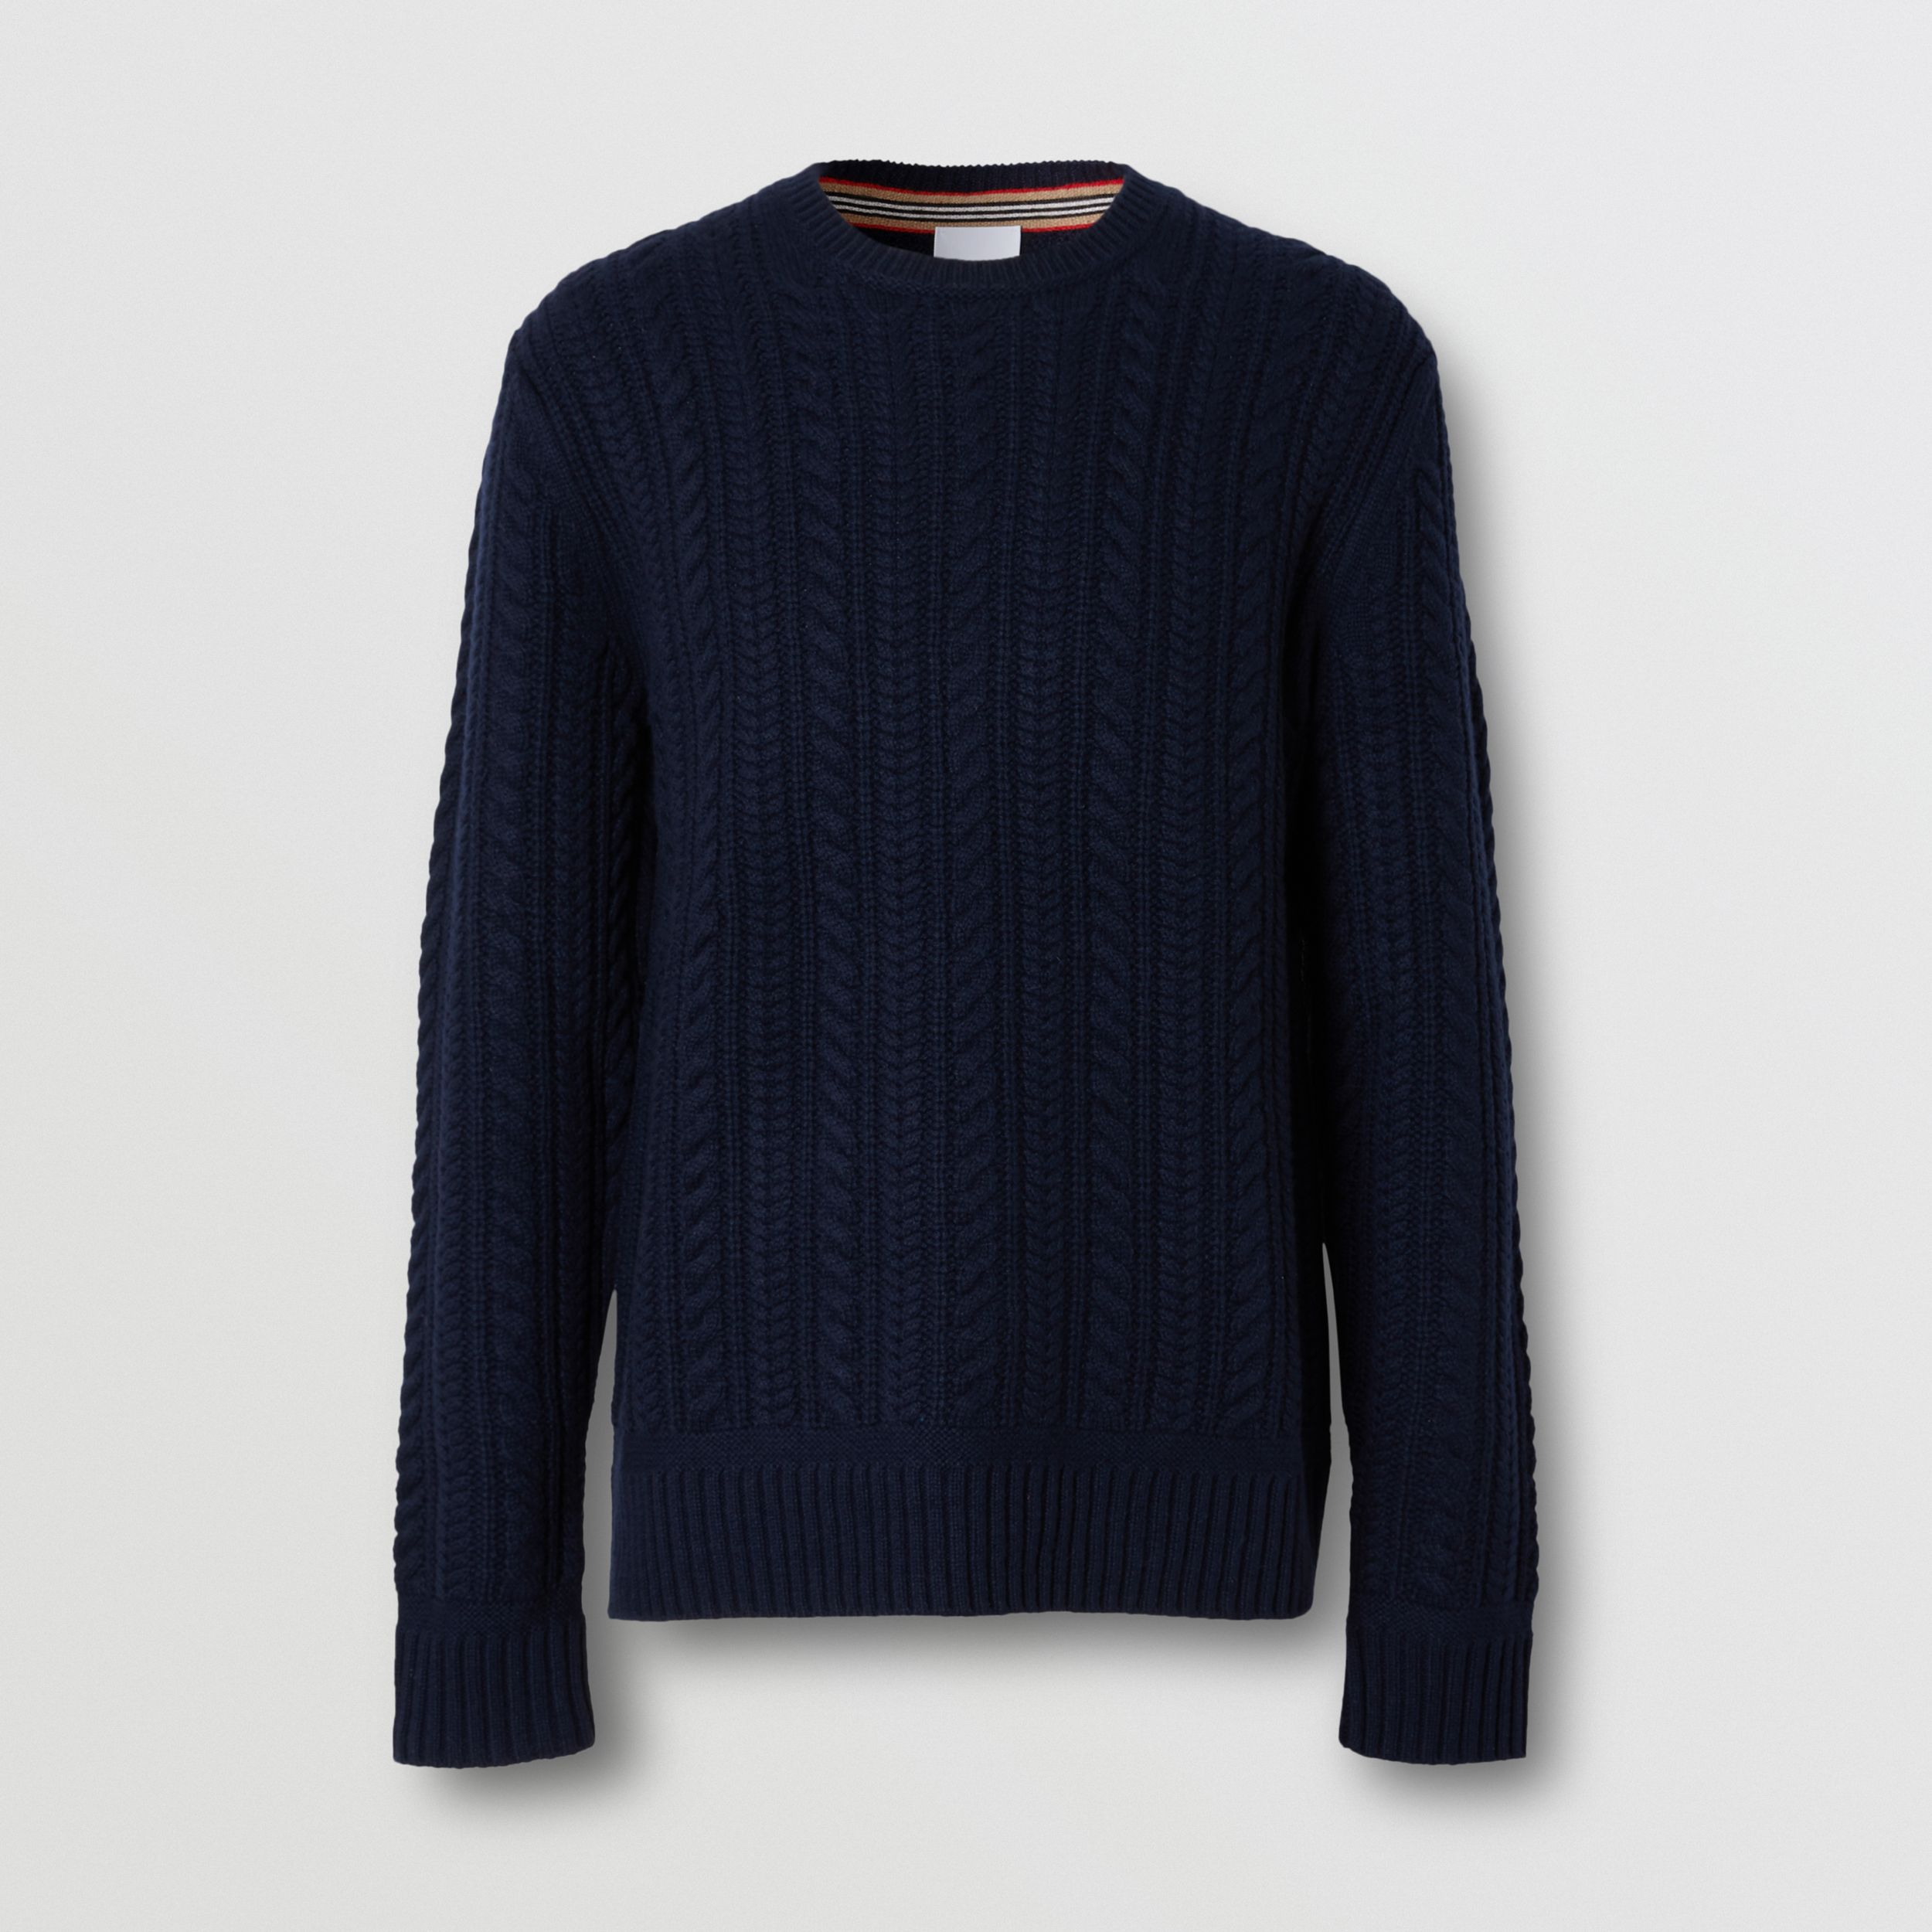 Cable Knit Cashmere Sweater in Navy - Men | Burberry - 4